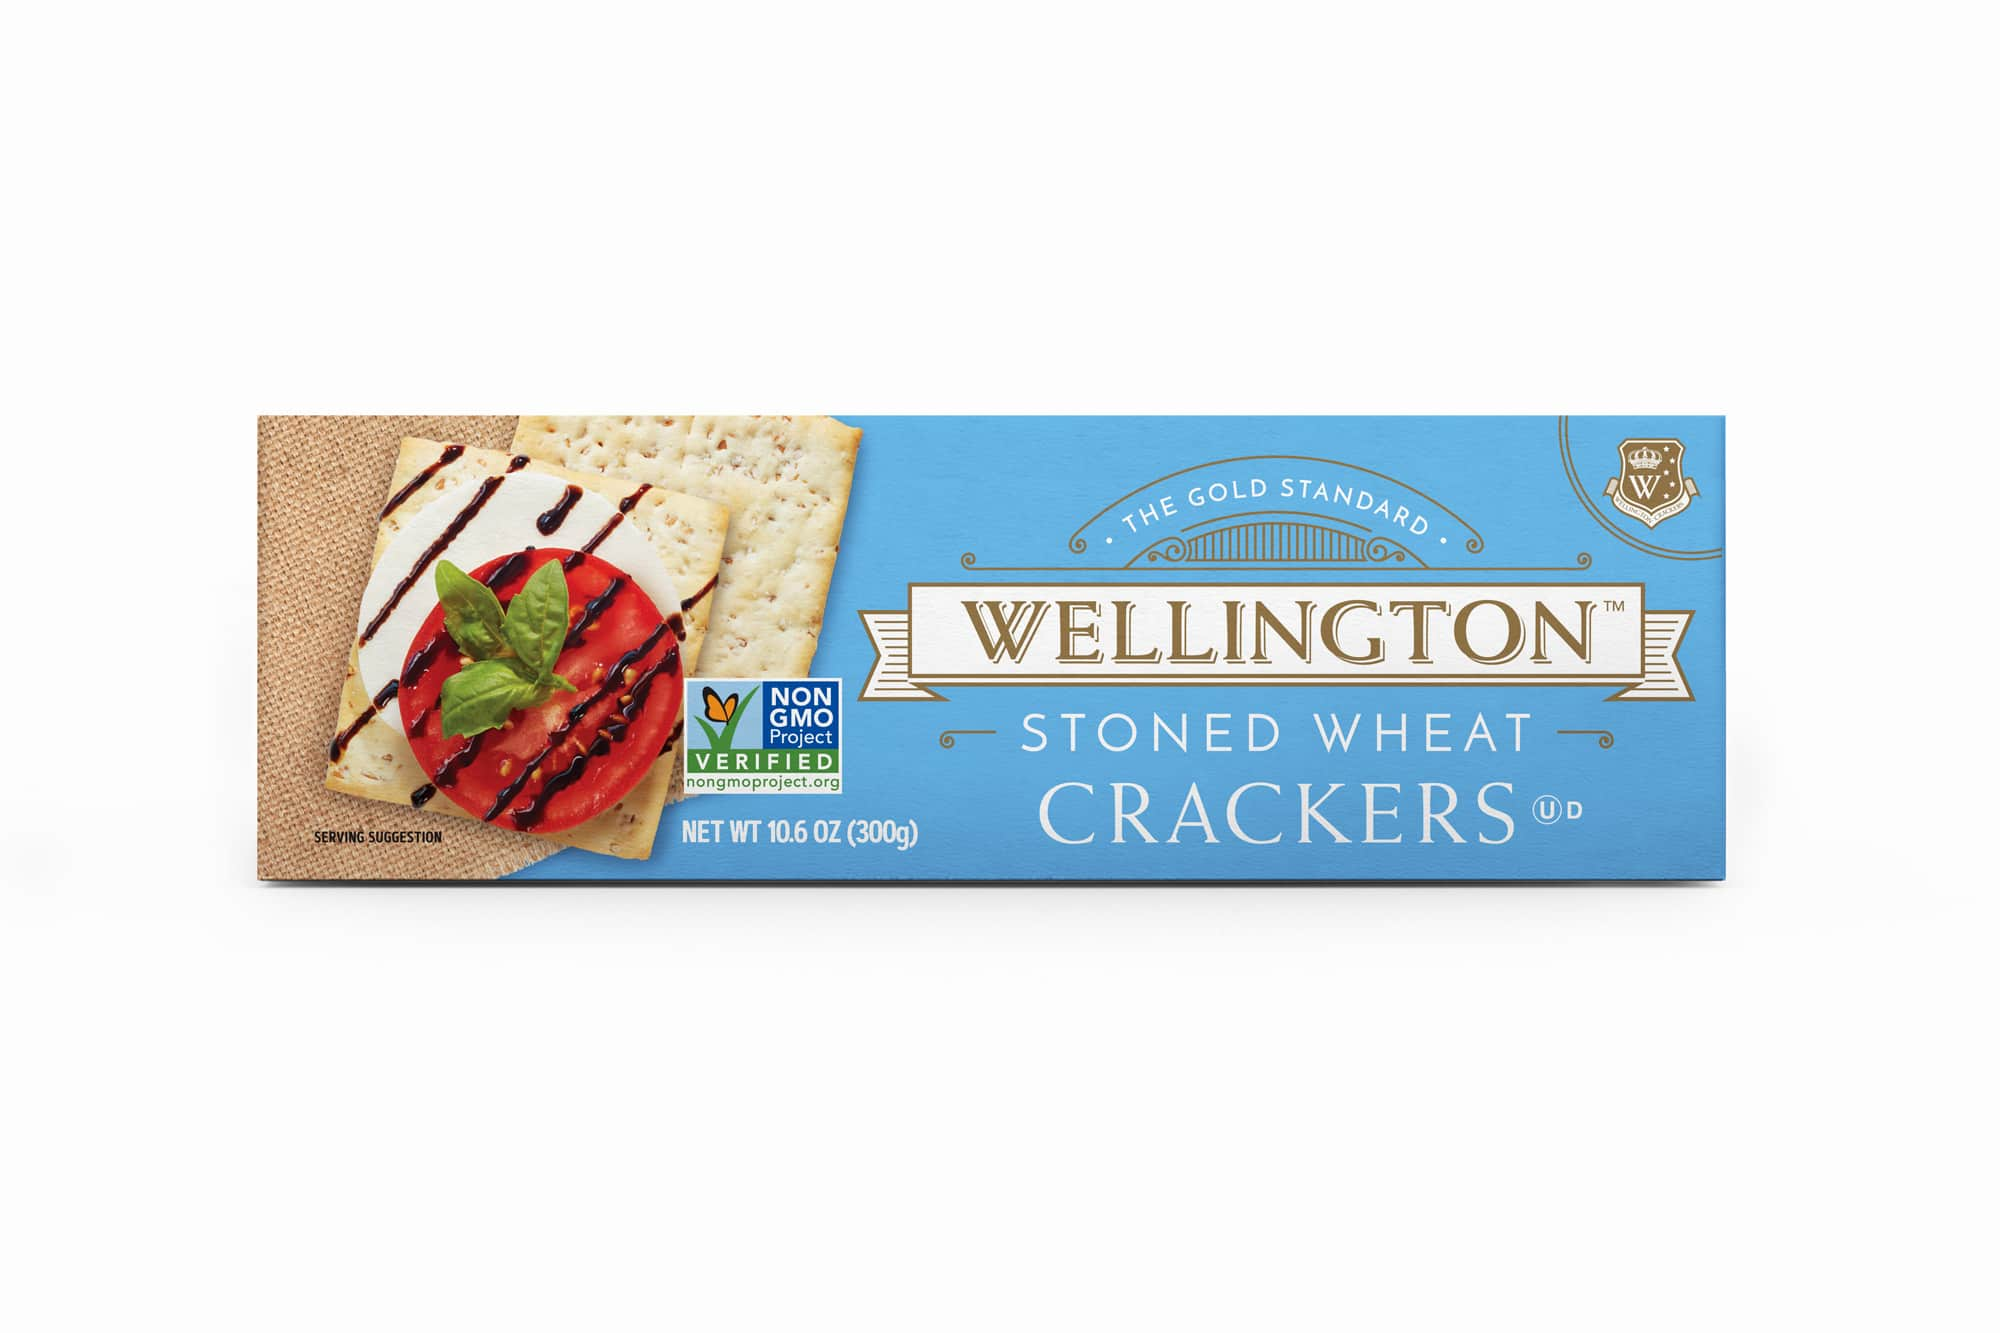 Stoned wheat crackers